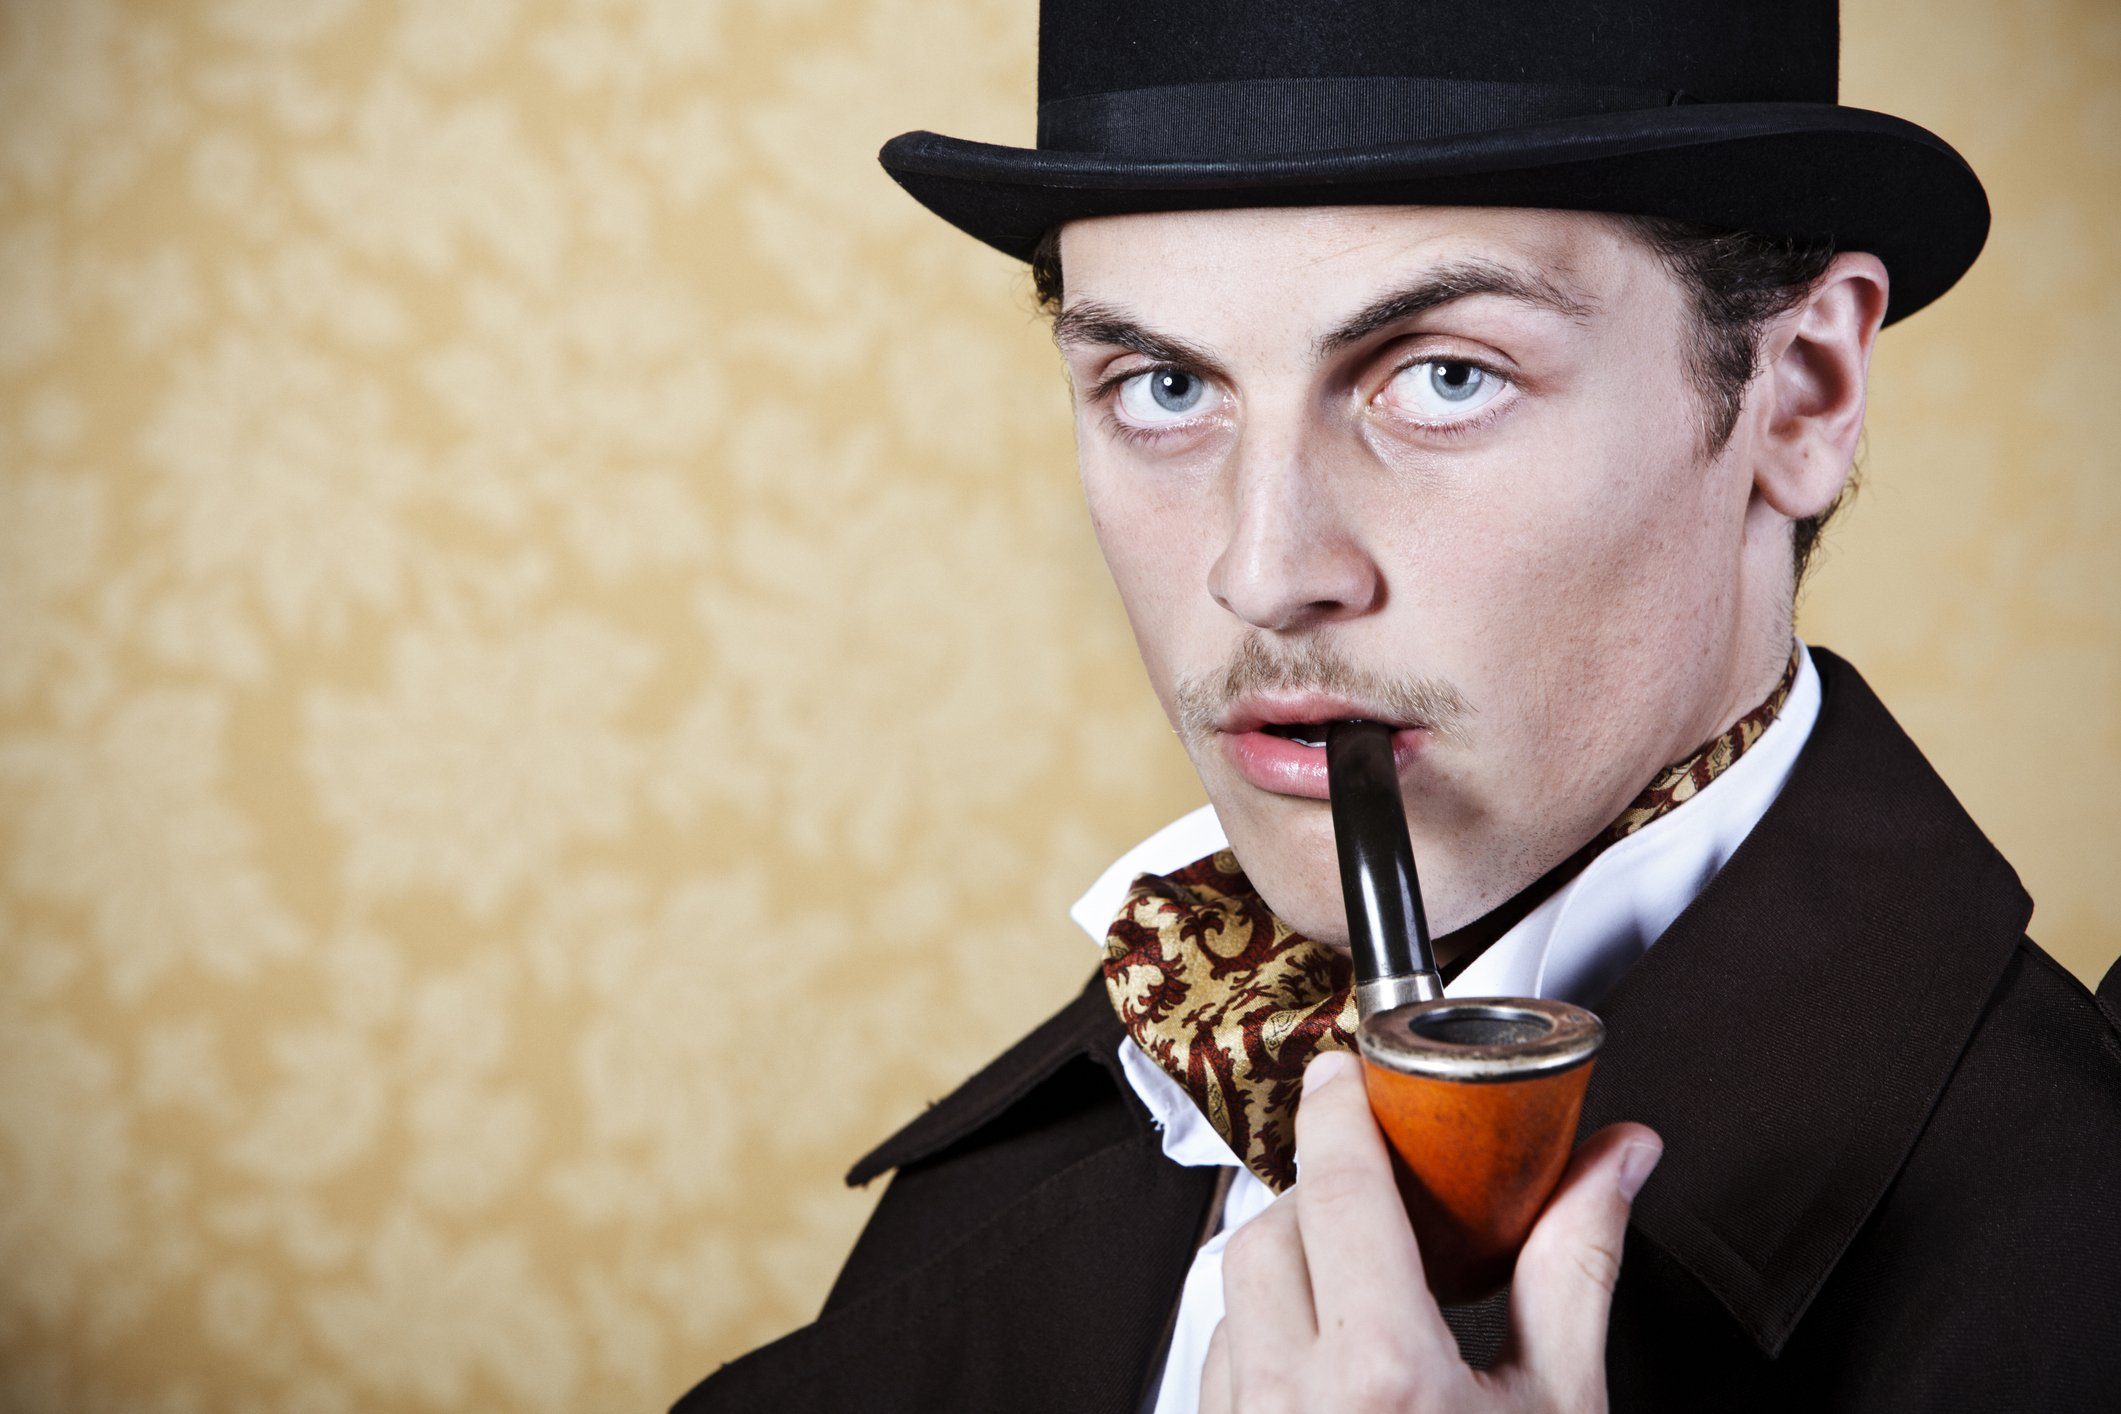 A man portraying Sherlock Holmes with pipe and hat.   Photo: Getty Images